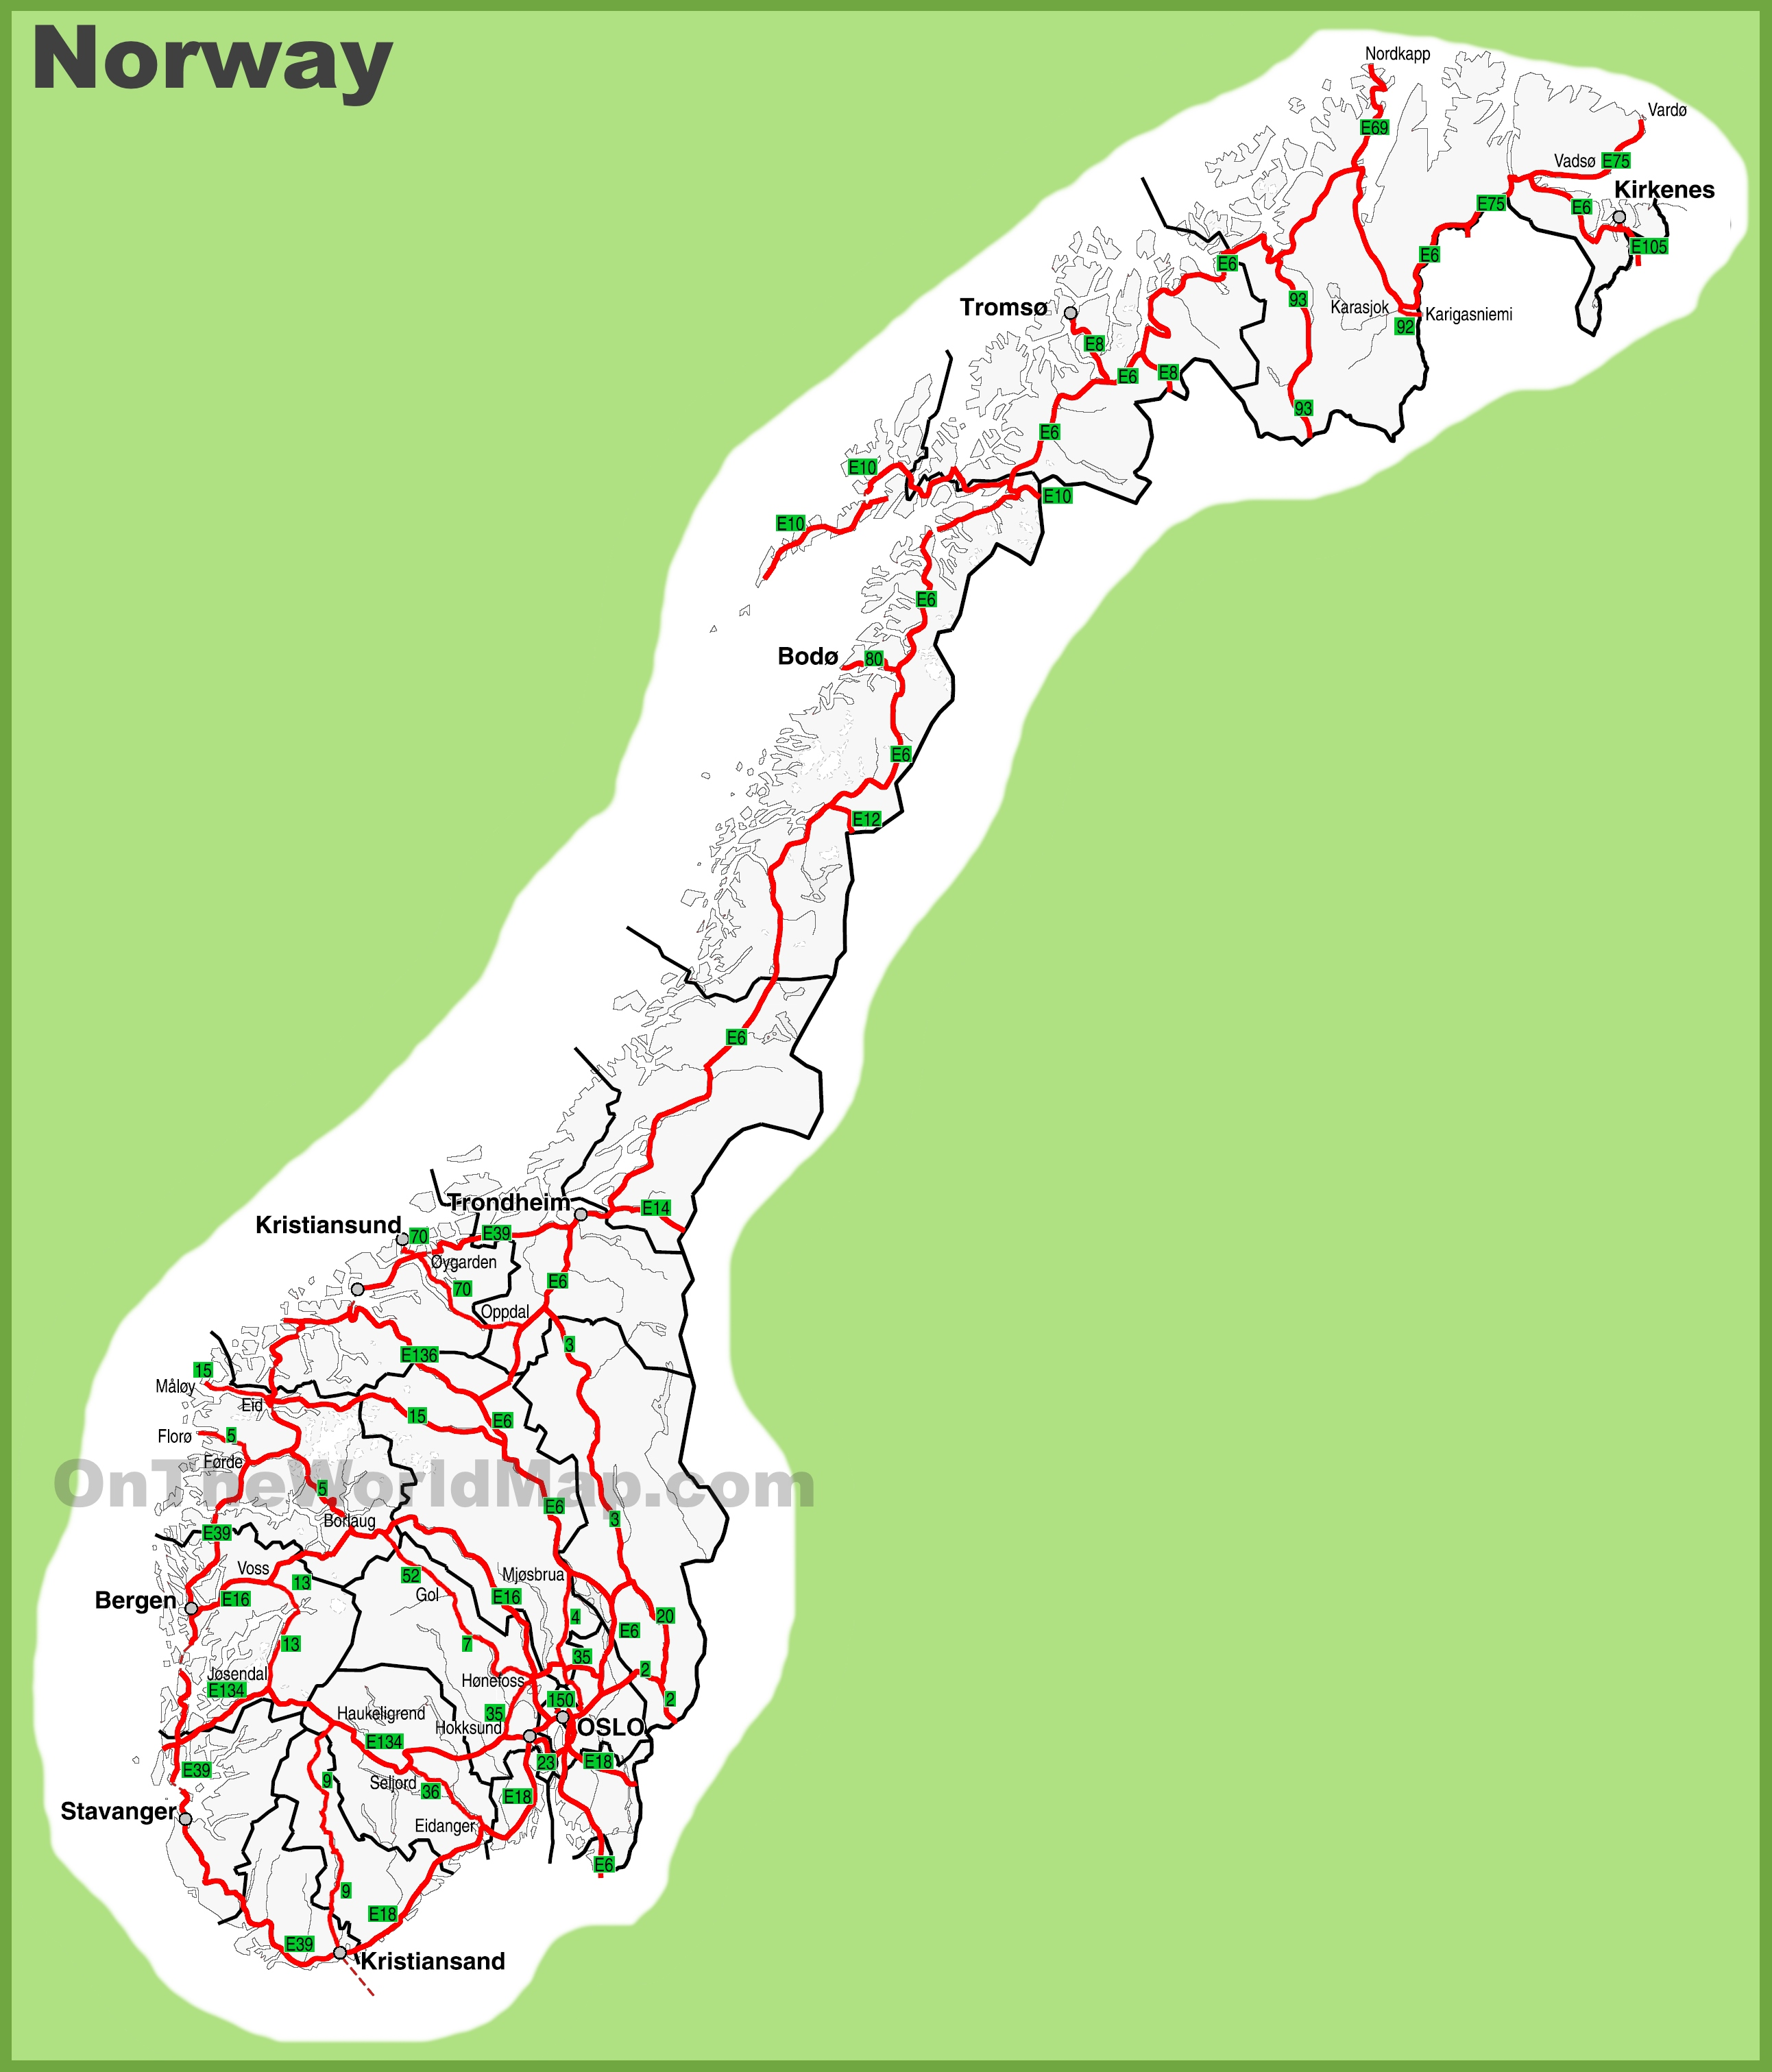 Norway Maps Maps Of Norway - Norway map detailed